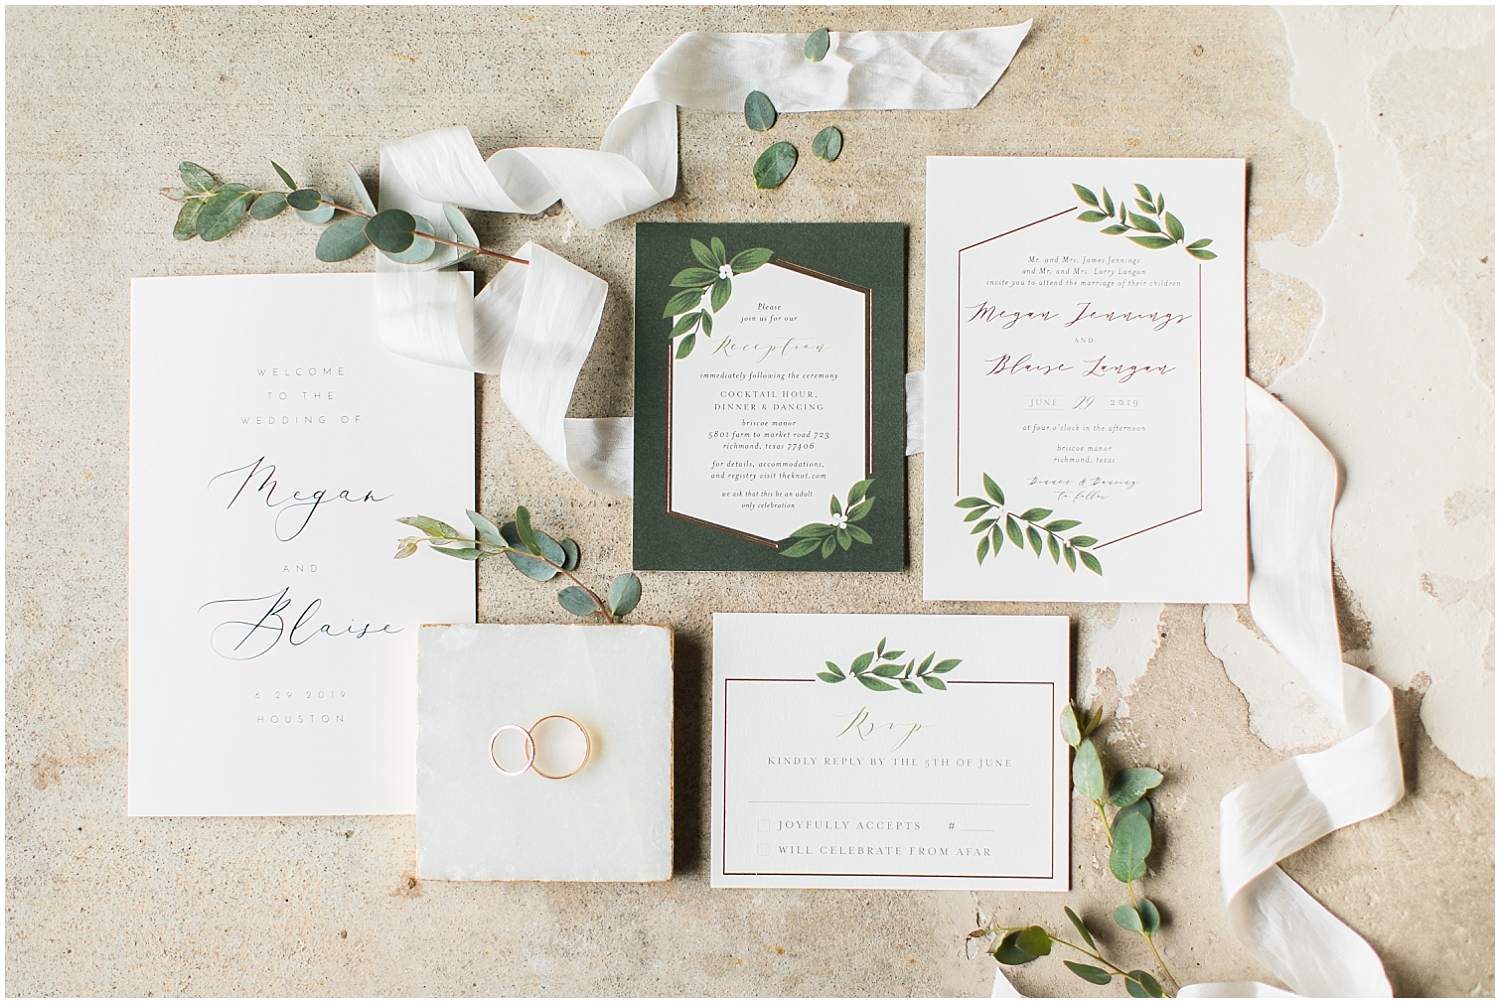 Elegant greenery wedding invitation